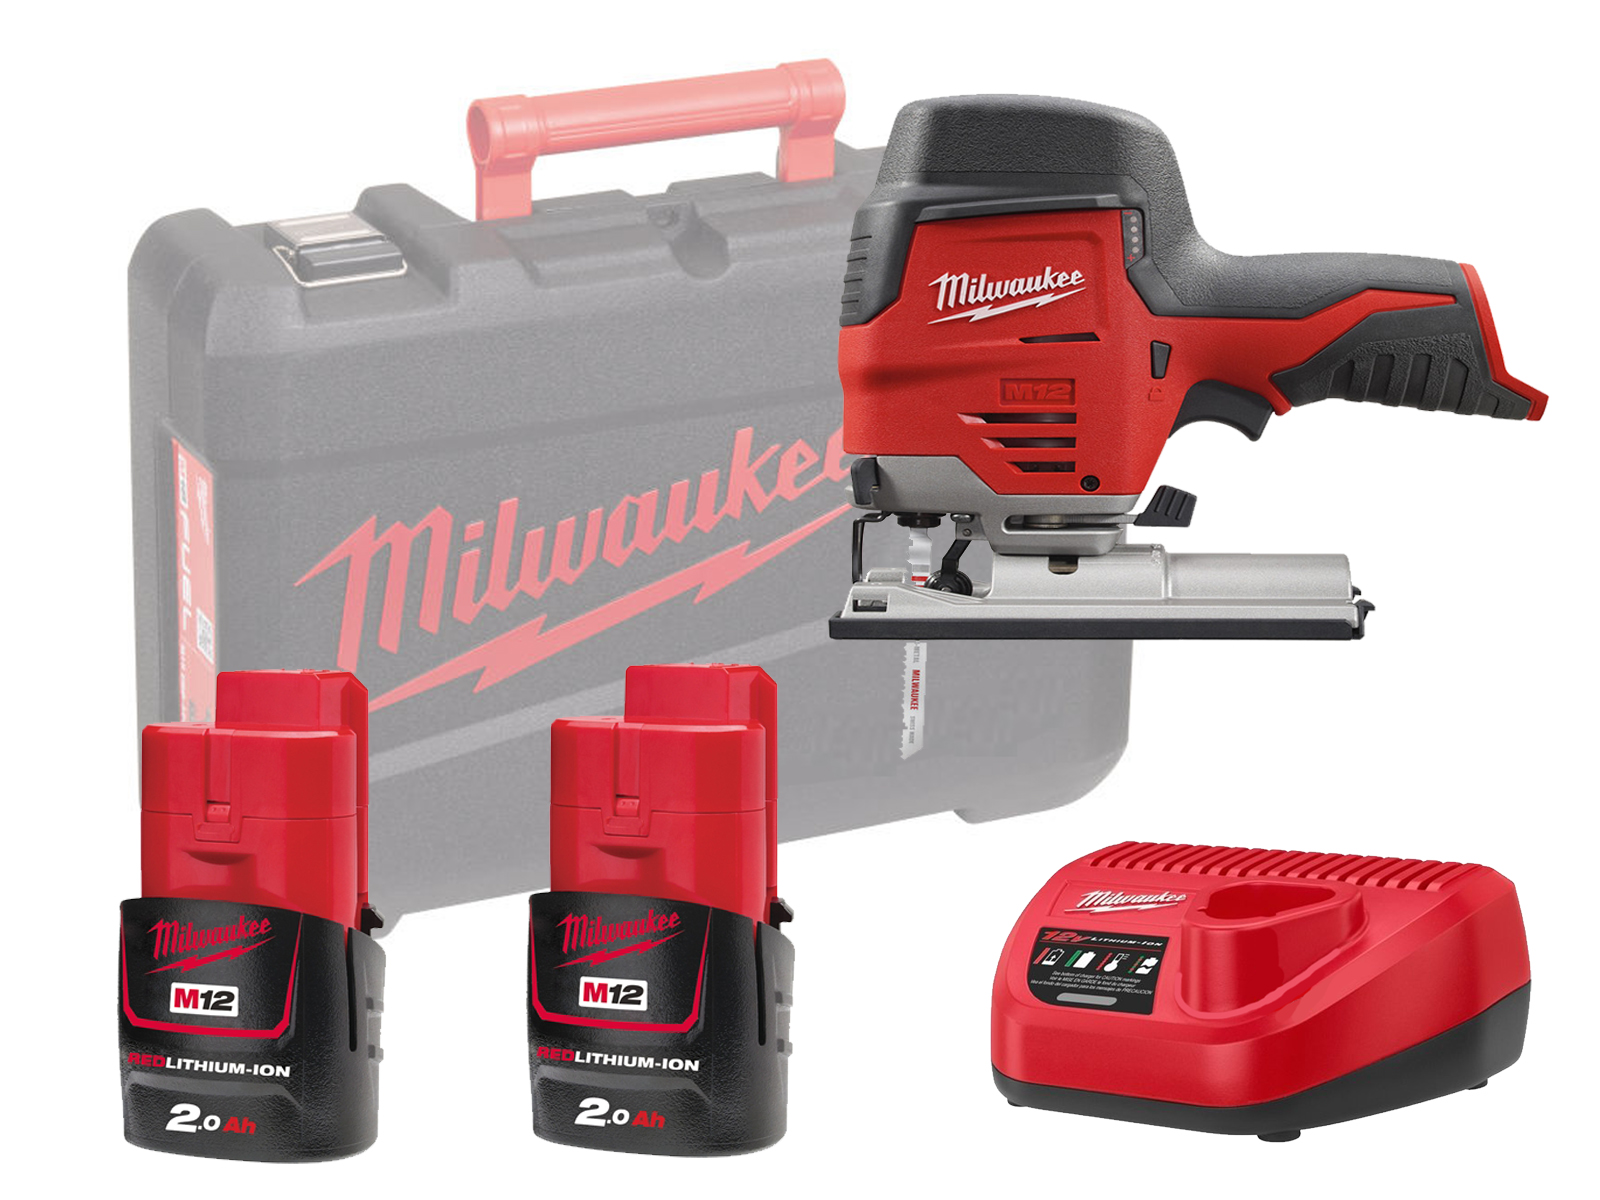 Milwaukee M12JS 12V Sub Compact Brushed Jigsaw with QUICK-LOK T-Shank Blade Clamp - 2.0ah Pack